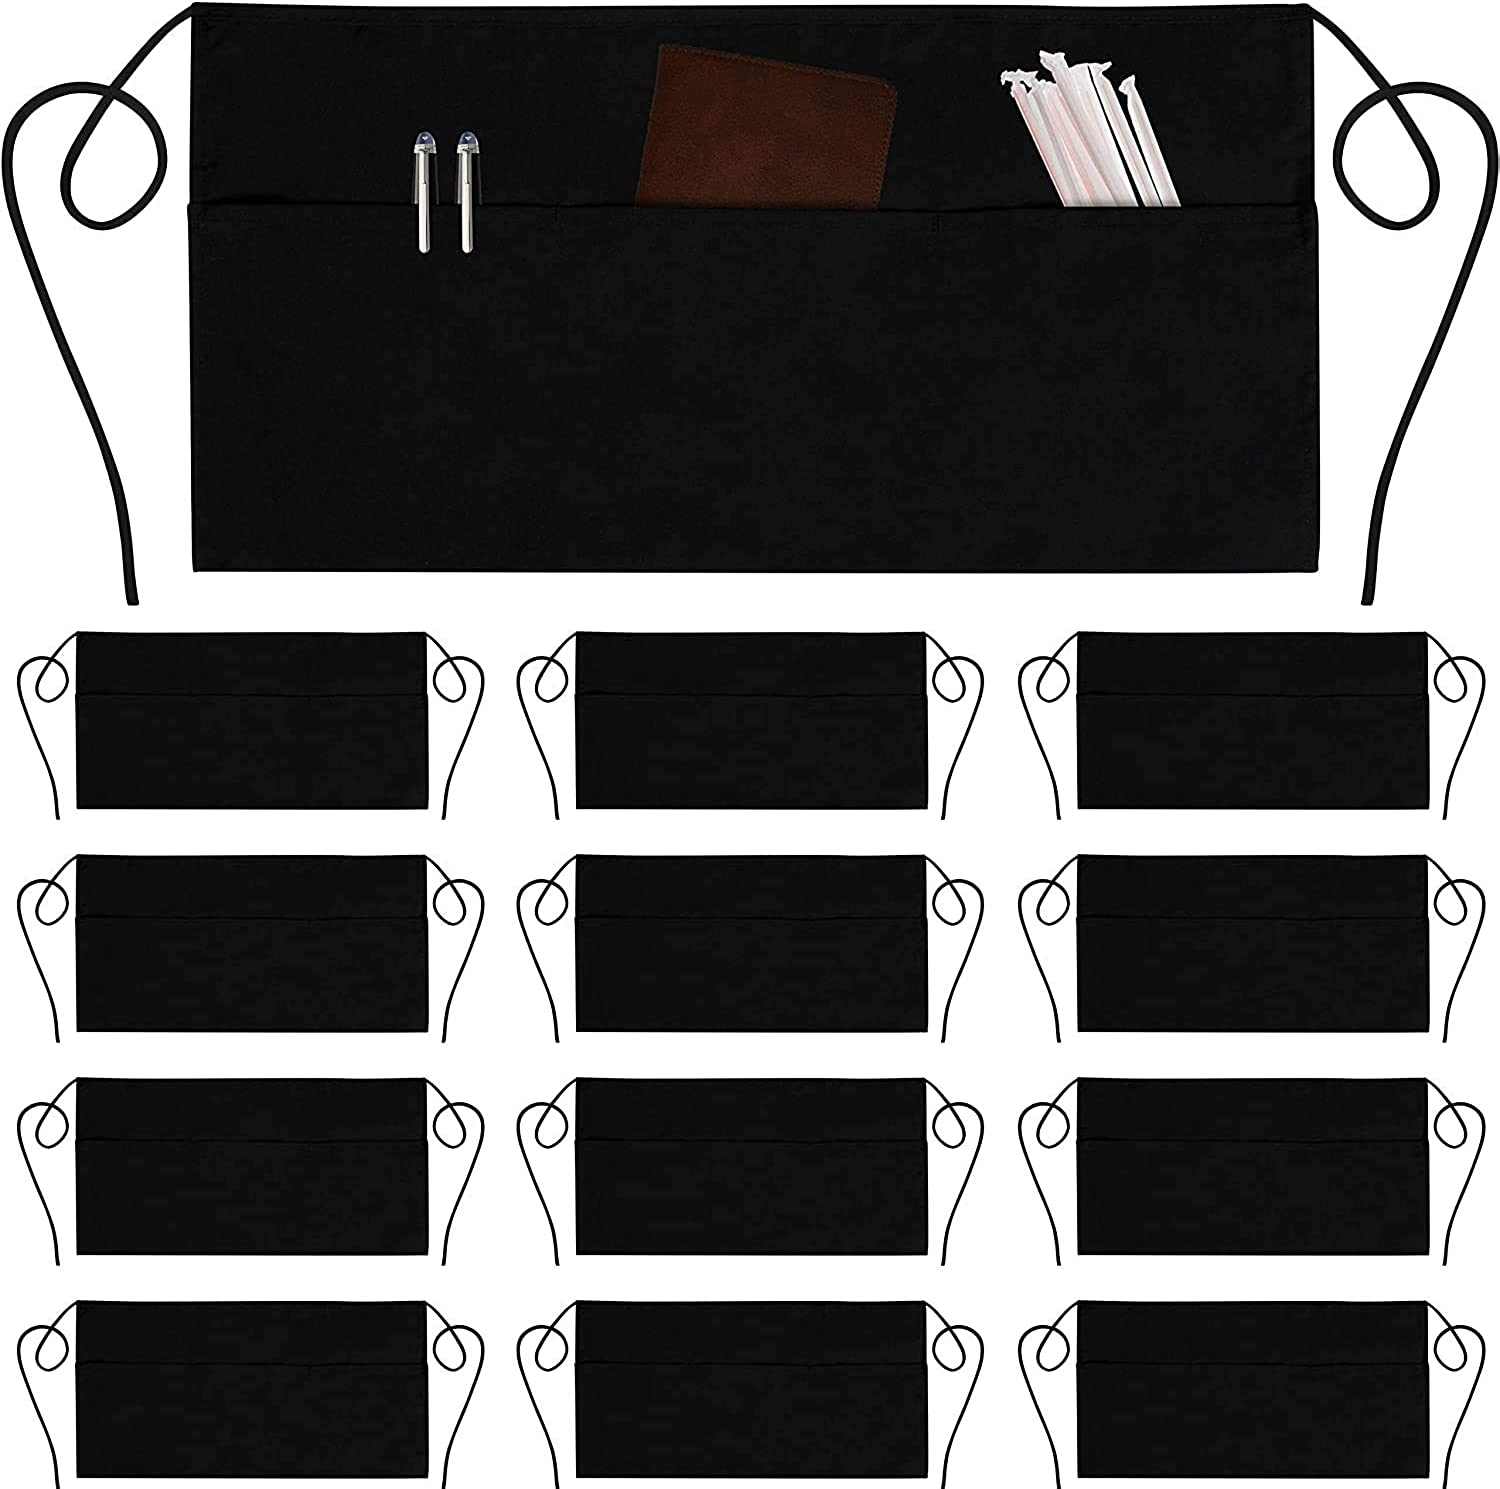 Avalon Kitchen Unisex Server Aprons – Pack of 12 Waist aprons with 3 pockets each – 24x12 inches Aprons Made from 100% Spun Polyester – Multipurpose for indoor & outdoor activities